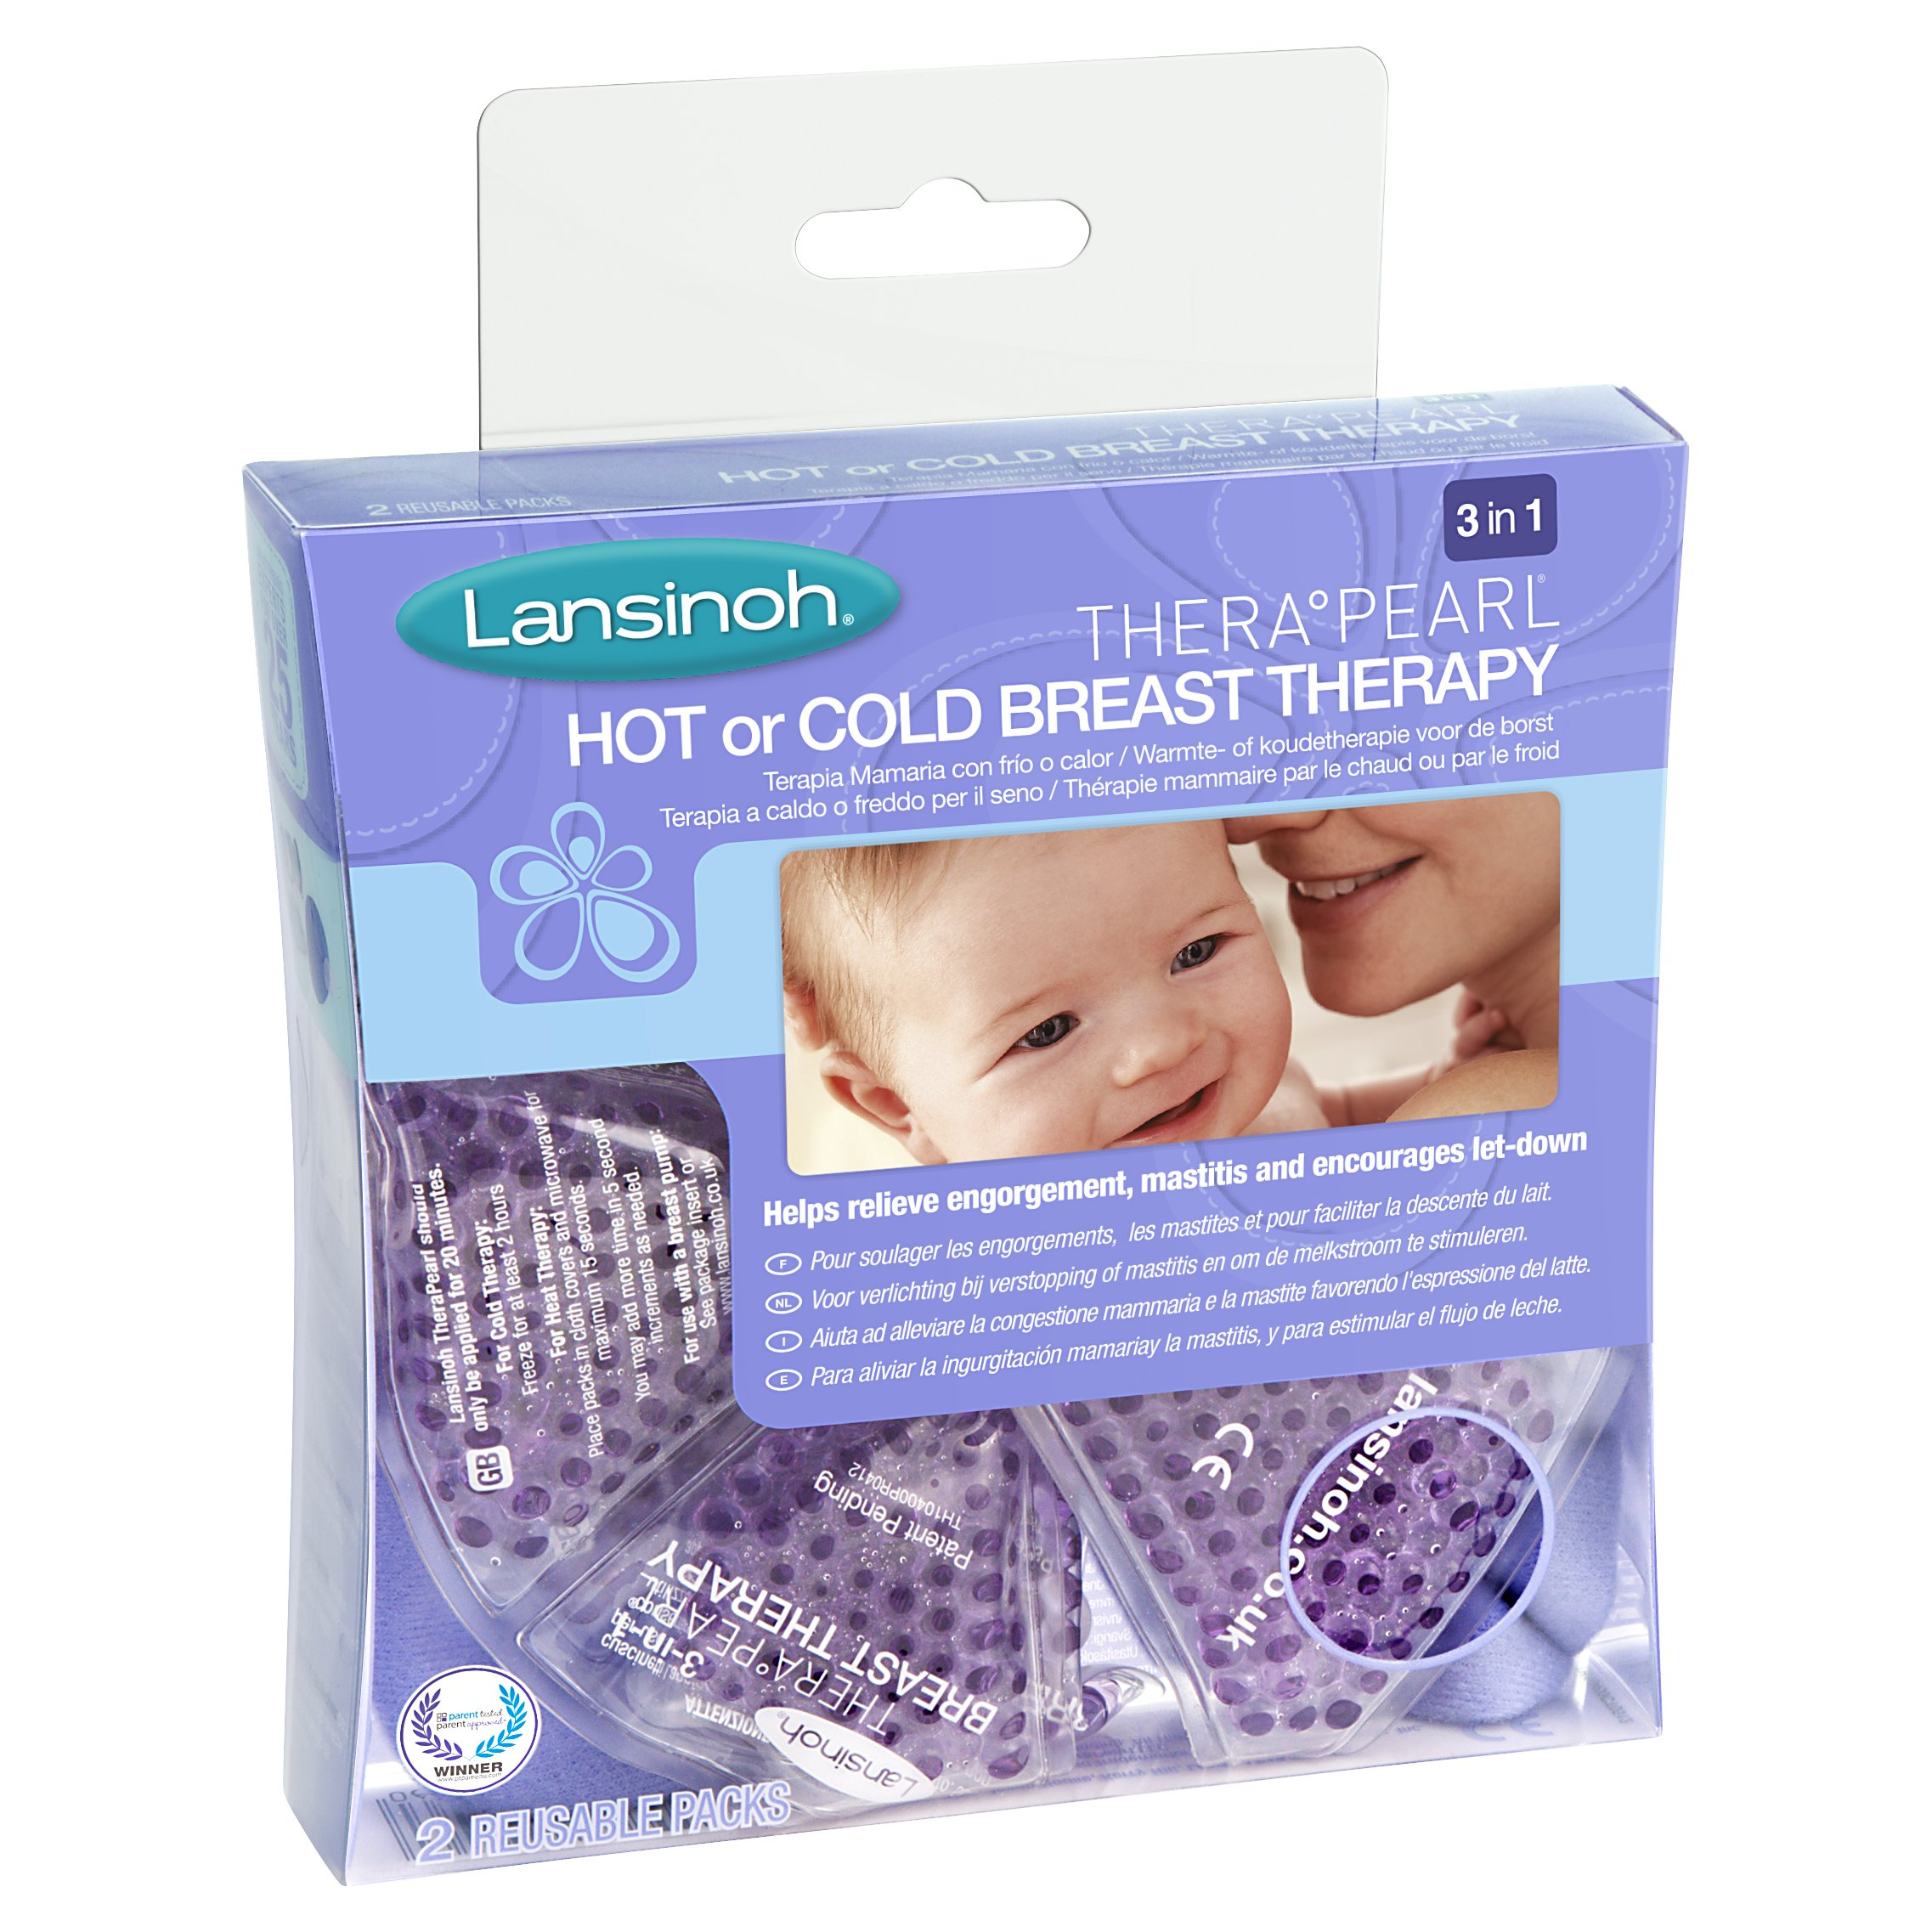 Lansinoh Therapearl 3-in-1 Breast Therapy for Breastfeeding mums